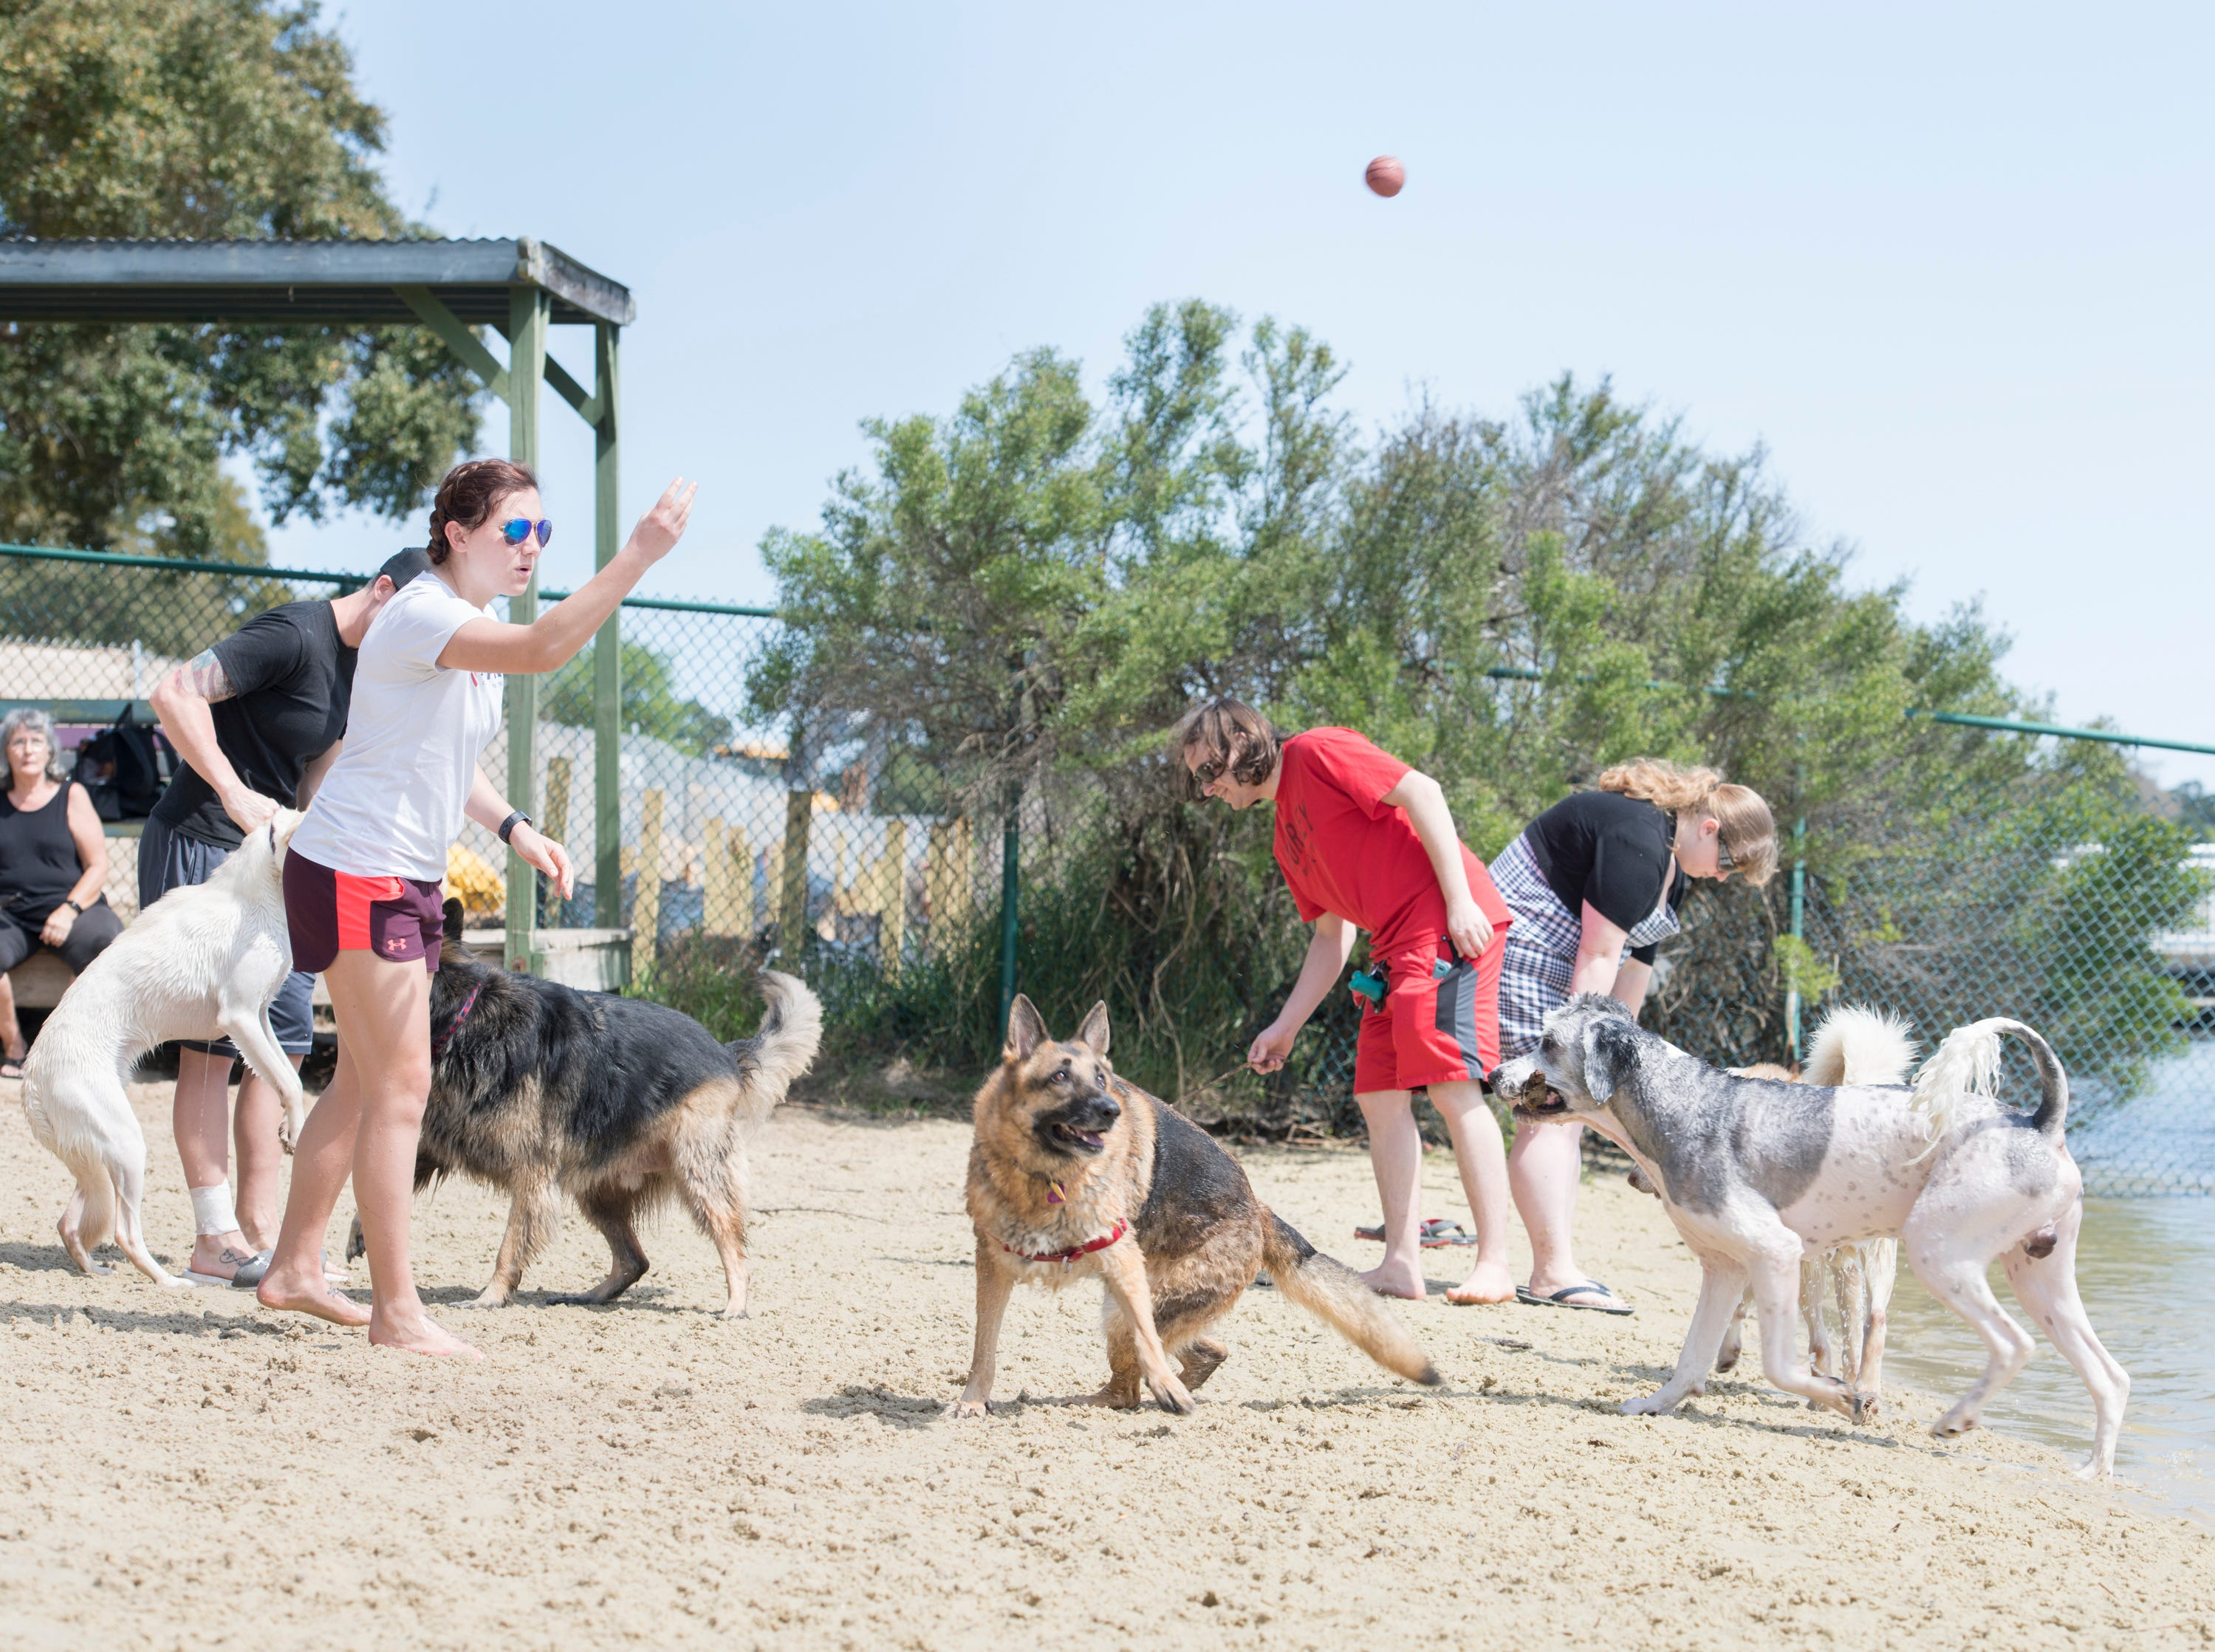 Shelby Hairr tosses a ball for the dogs at Bayview Park's dog park in Pensacola on Tuesday, March 12, 2019.  Navarre residents hope to get a similar dog park for their city.